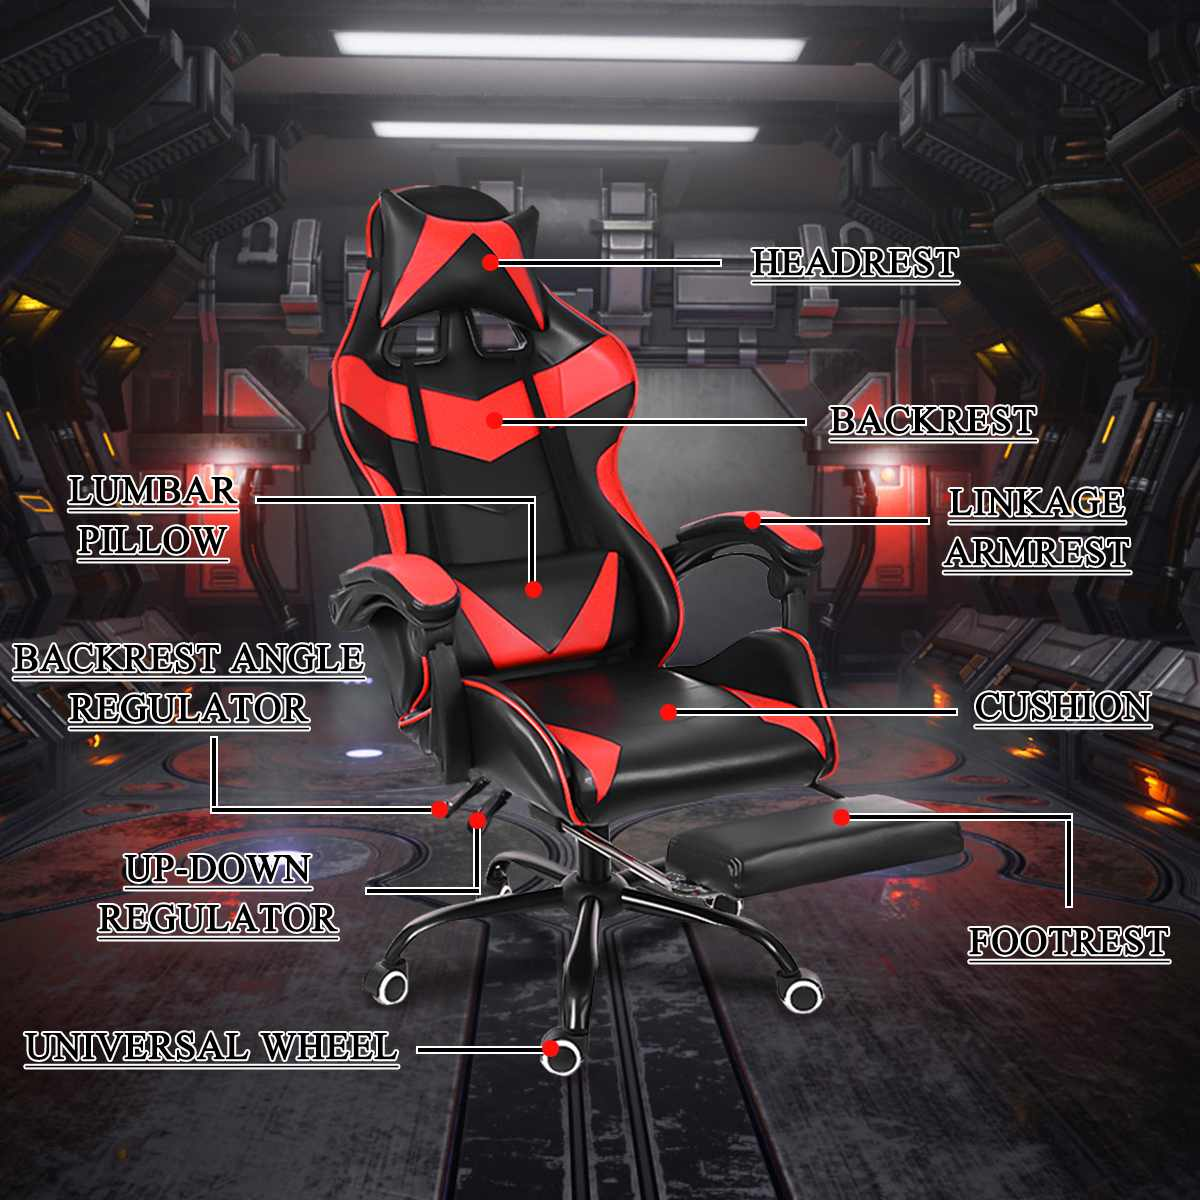 H9700161568604a3aad34752e40696d60w - WCG Gaming Chair Computer Armchair Office Chairs Home Swivel Massage Chair Lifting Adjustable Desk Chair Lying Recliner Chair